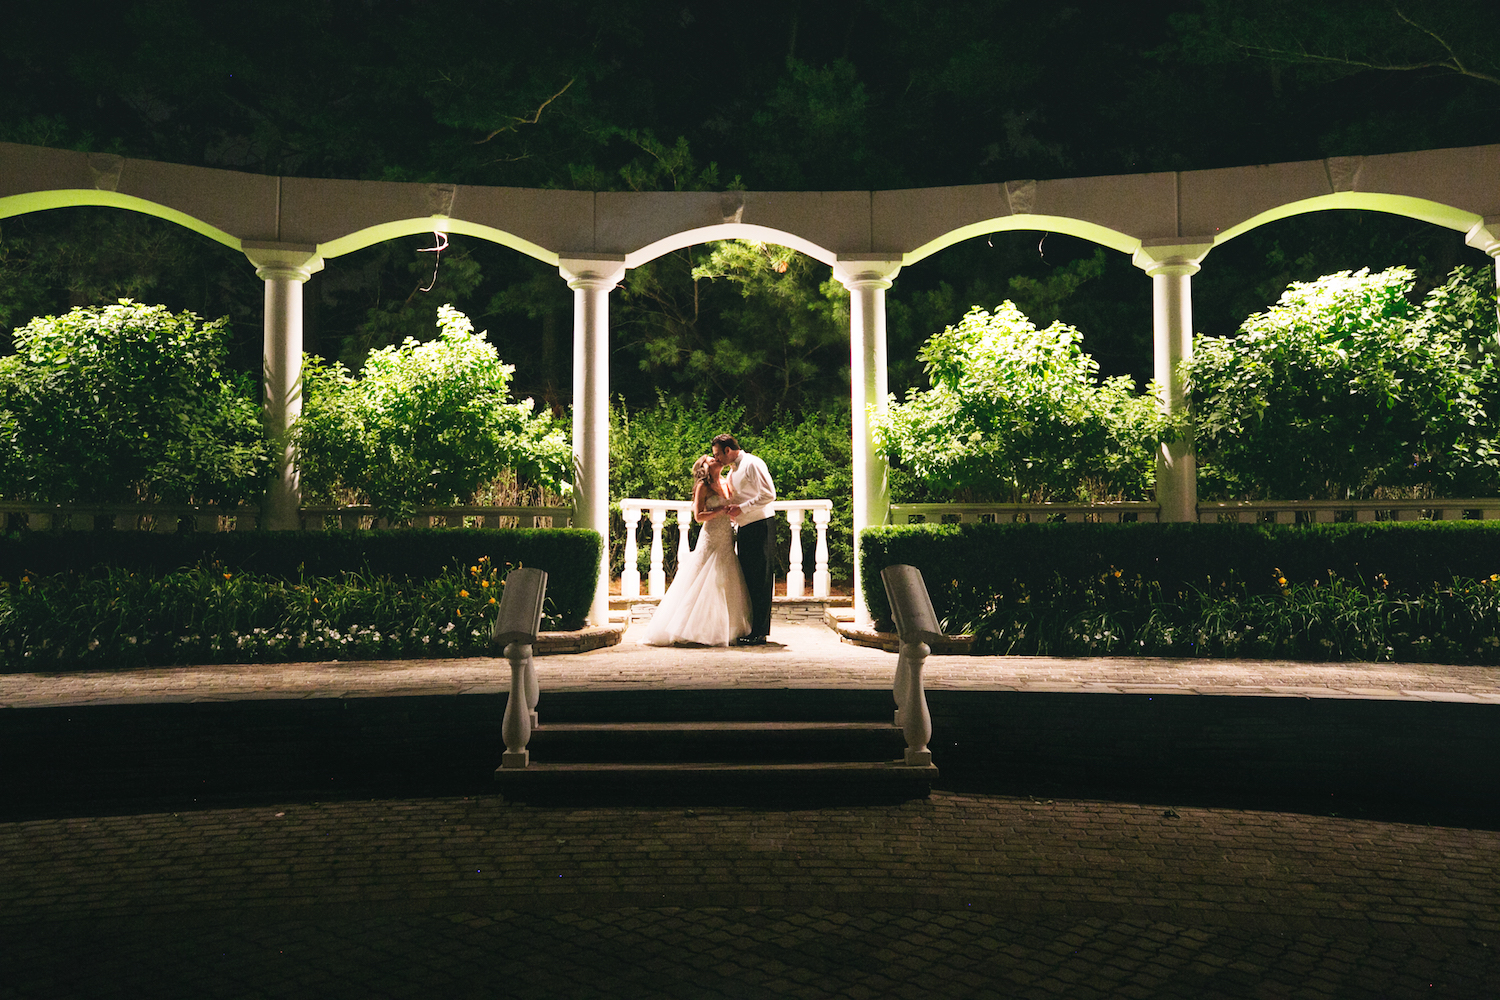 tricia&anthony-kissing-on-venue-grounds-night-nj-wedding-photography